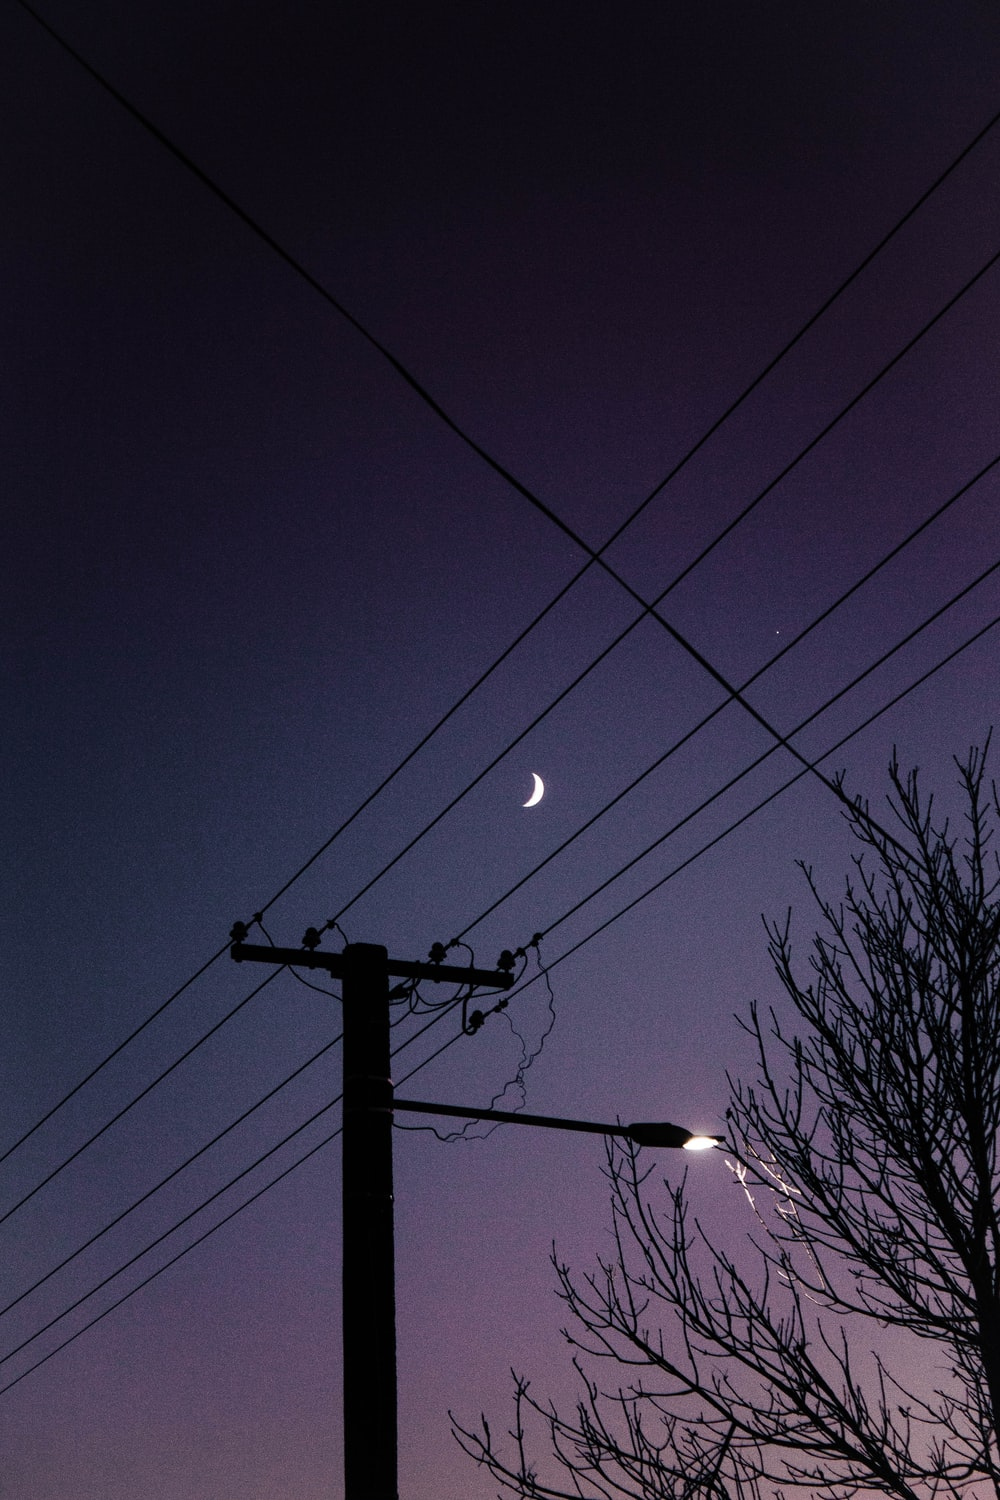 black electric post under blue sky during night time